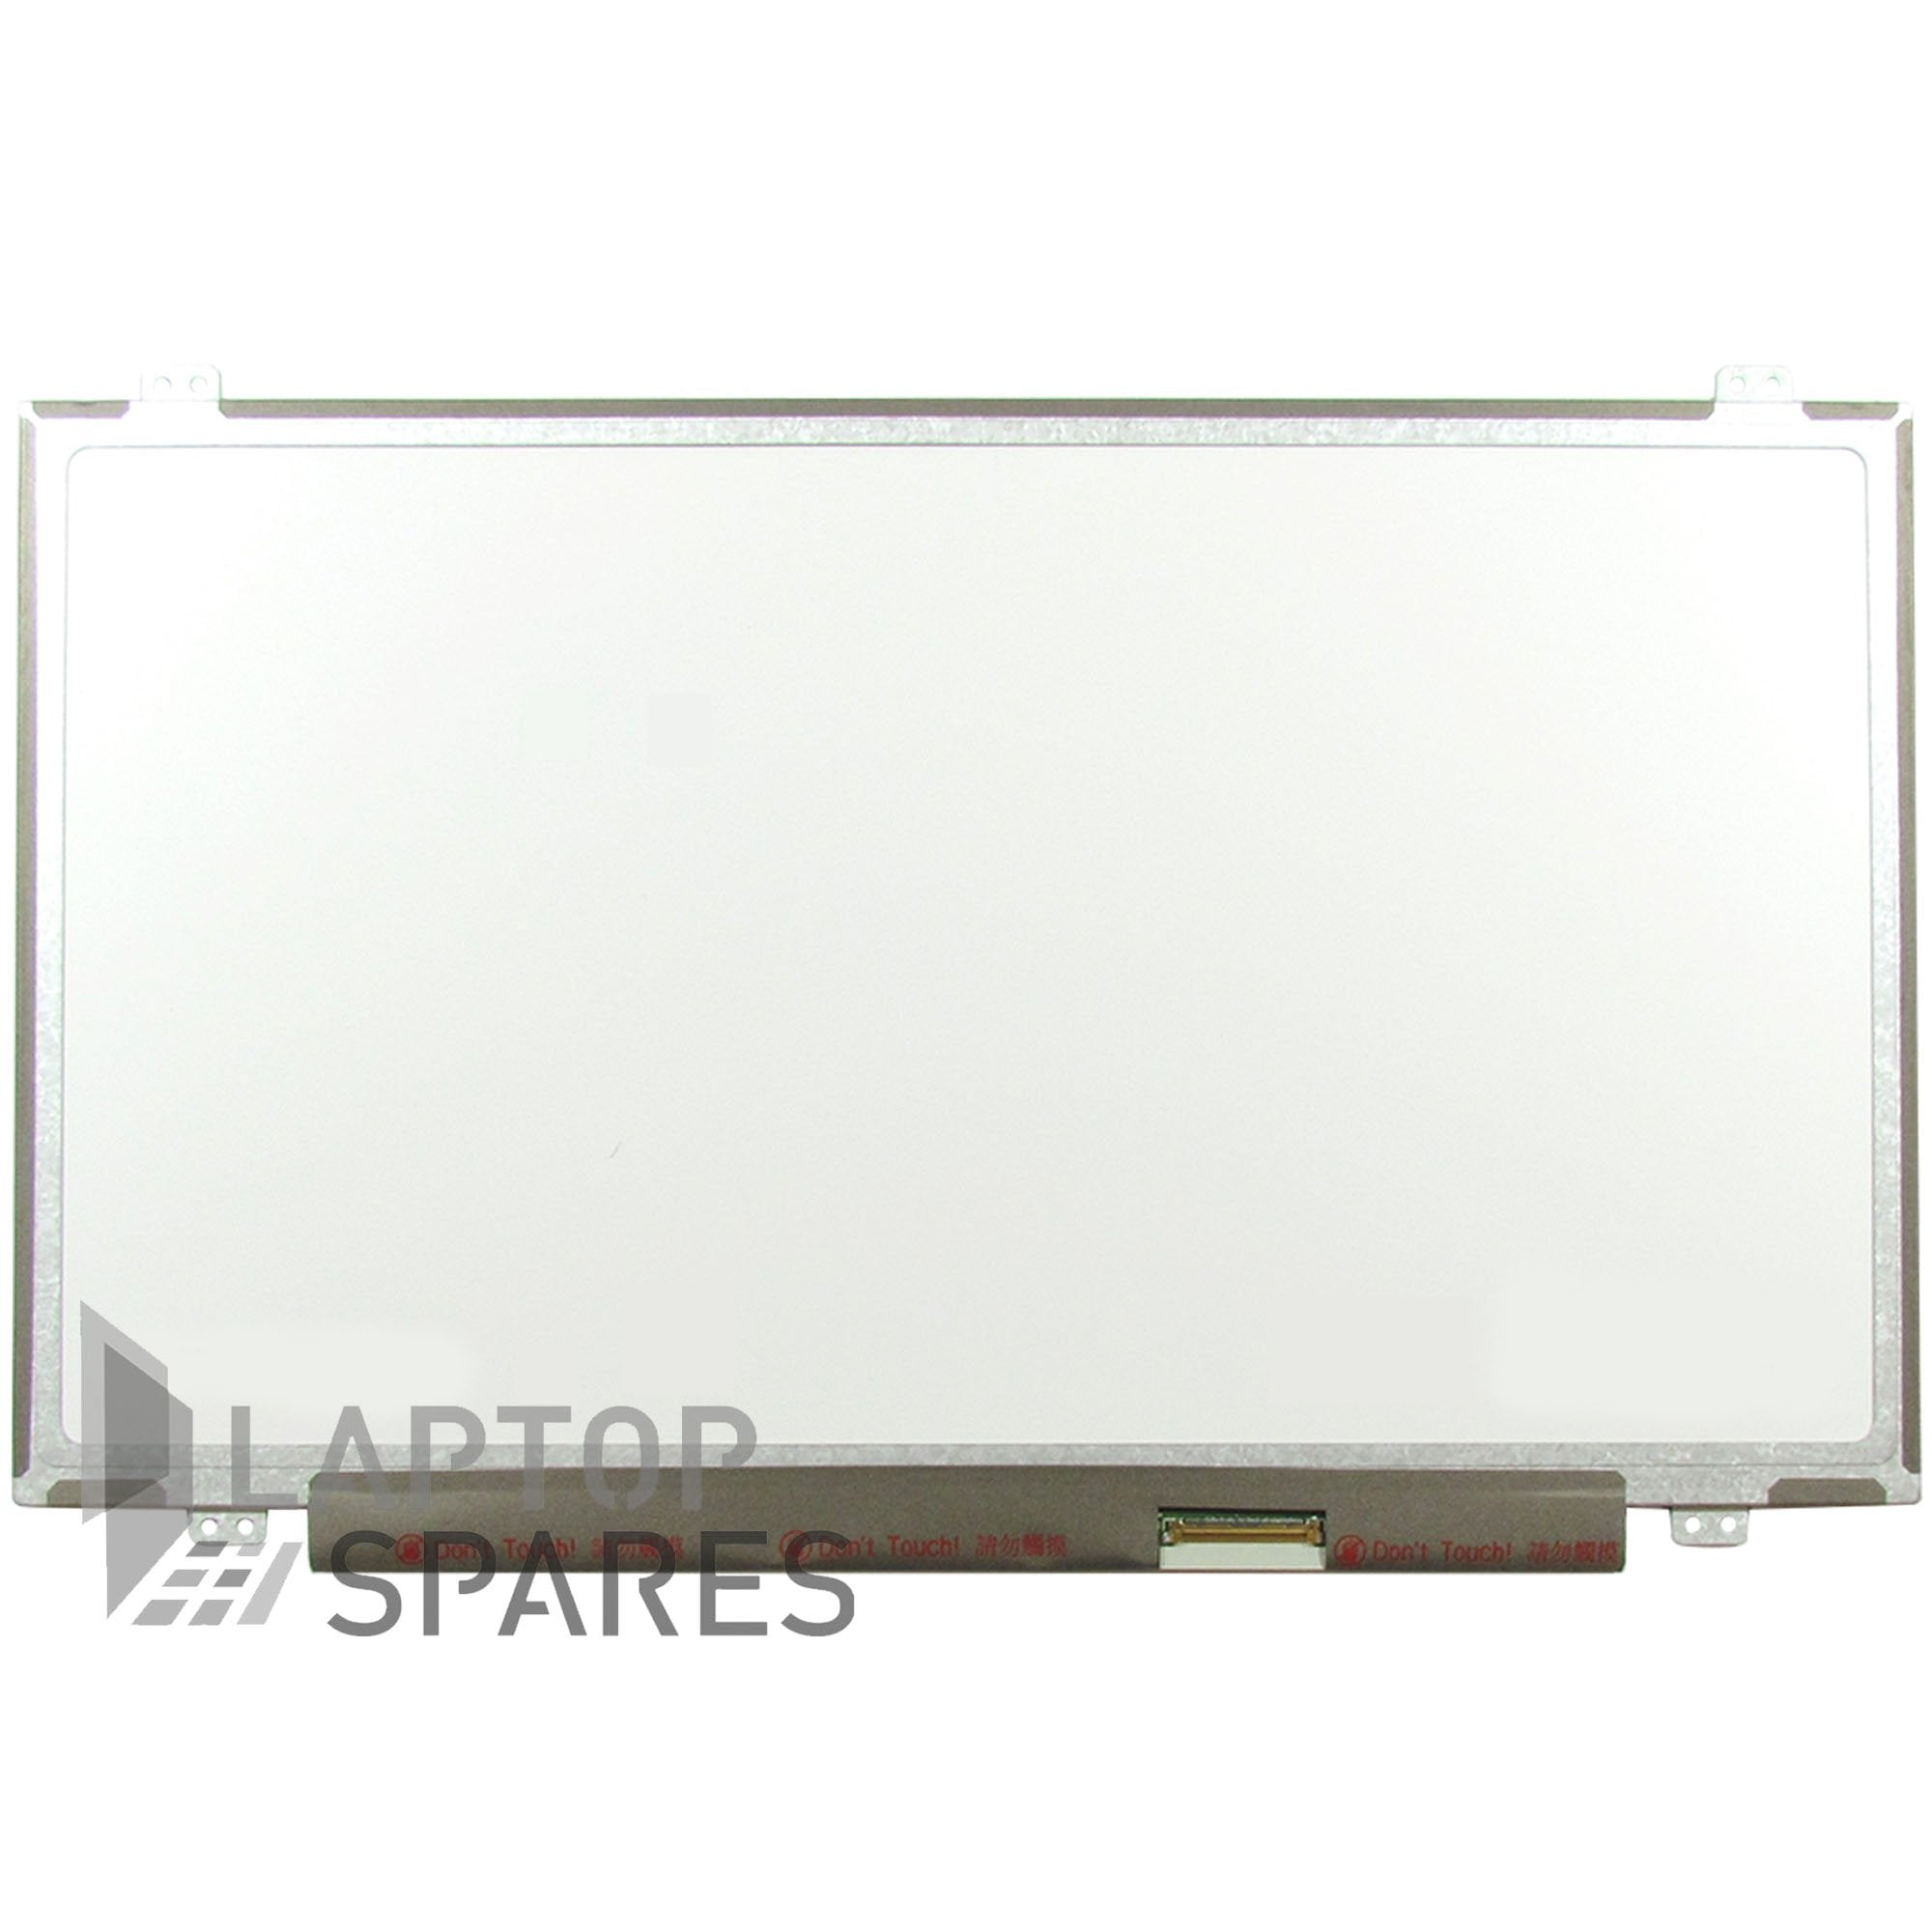 ChiMei Innolux N140BGE-L32-A4 Compatible 40-Pin Slim Screen 1366x768